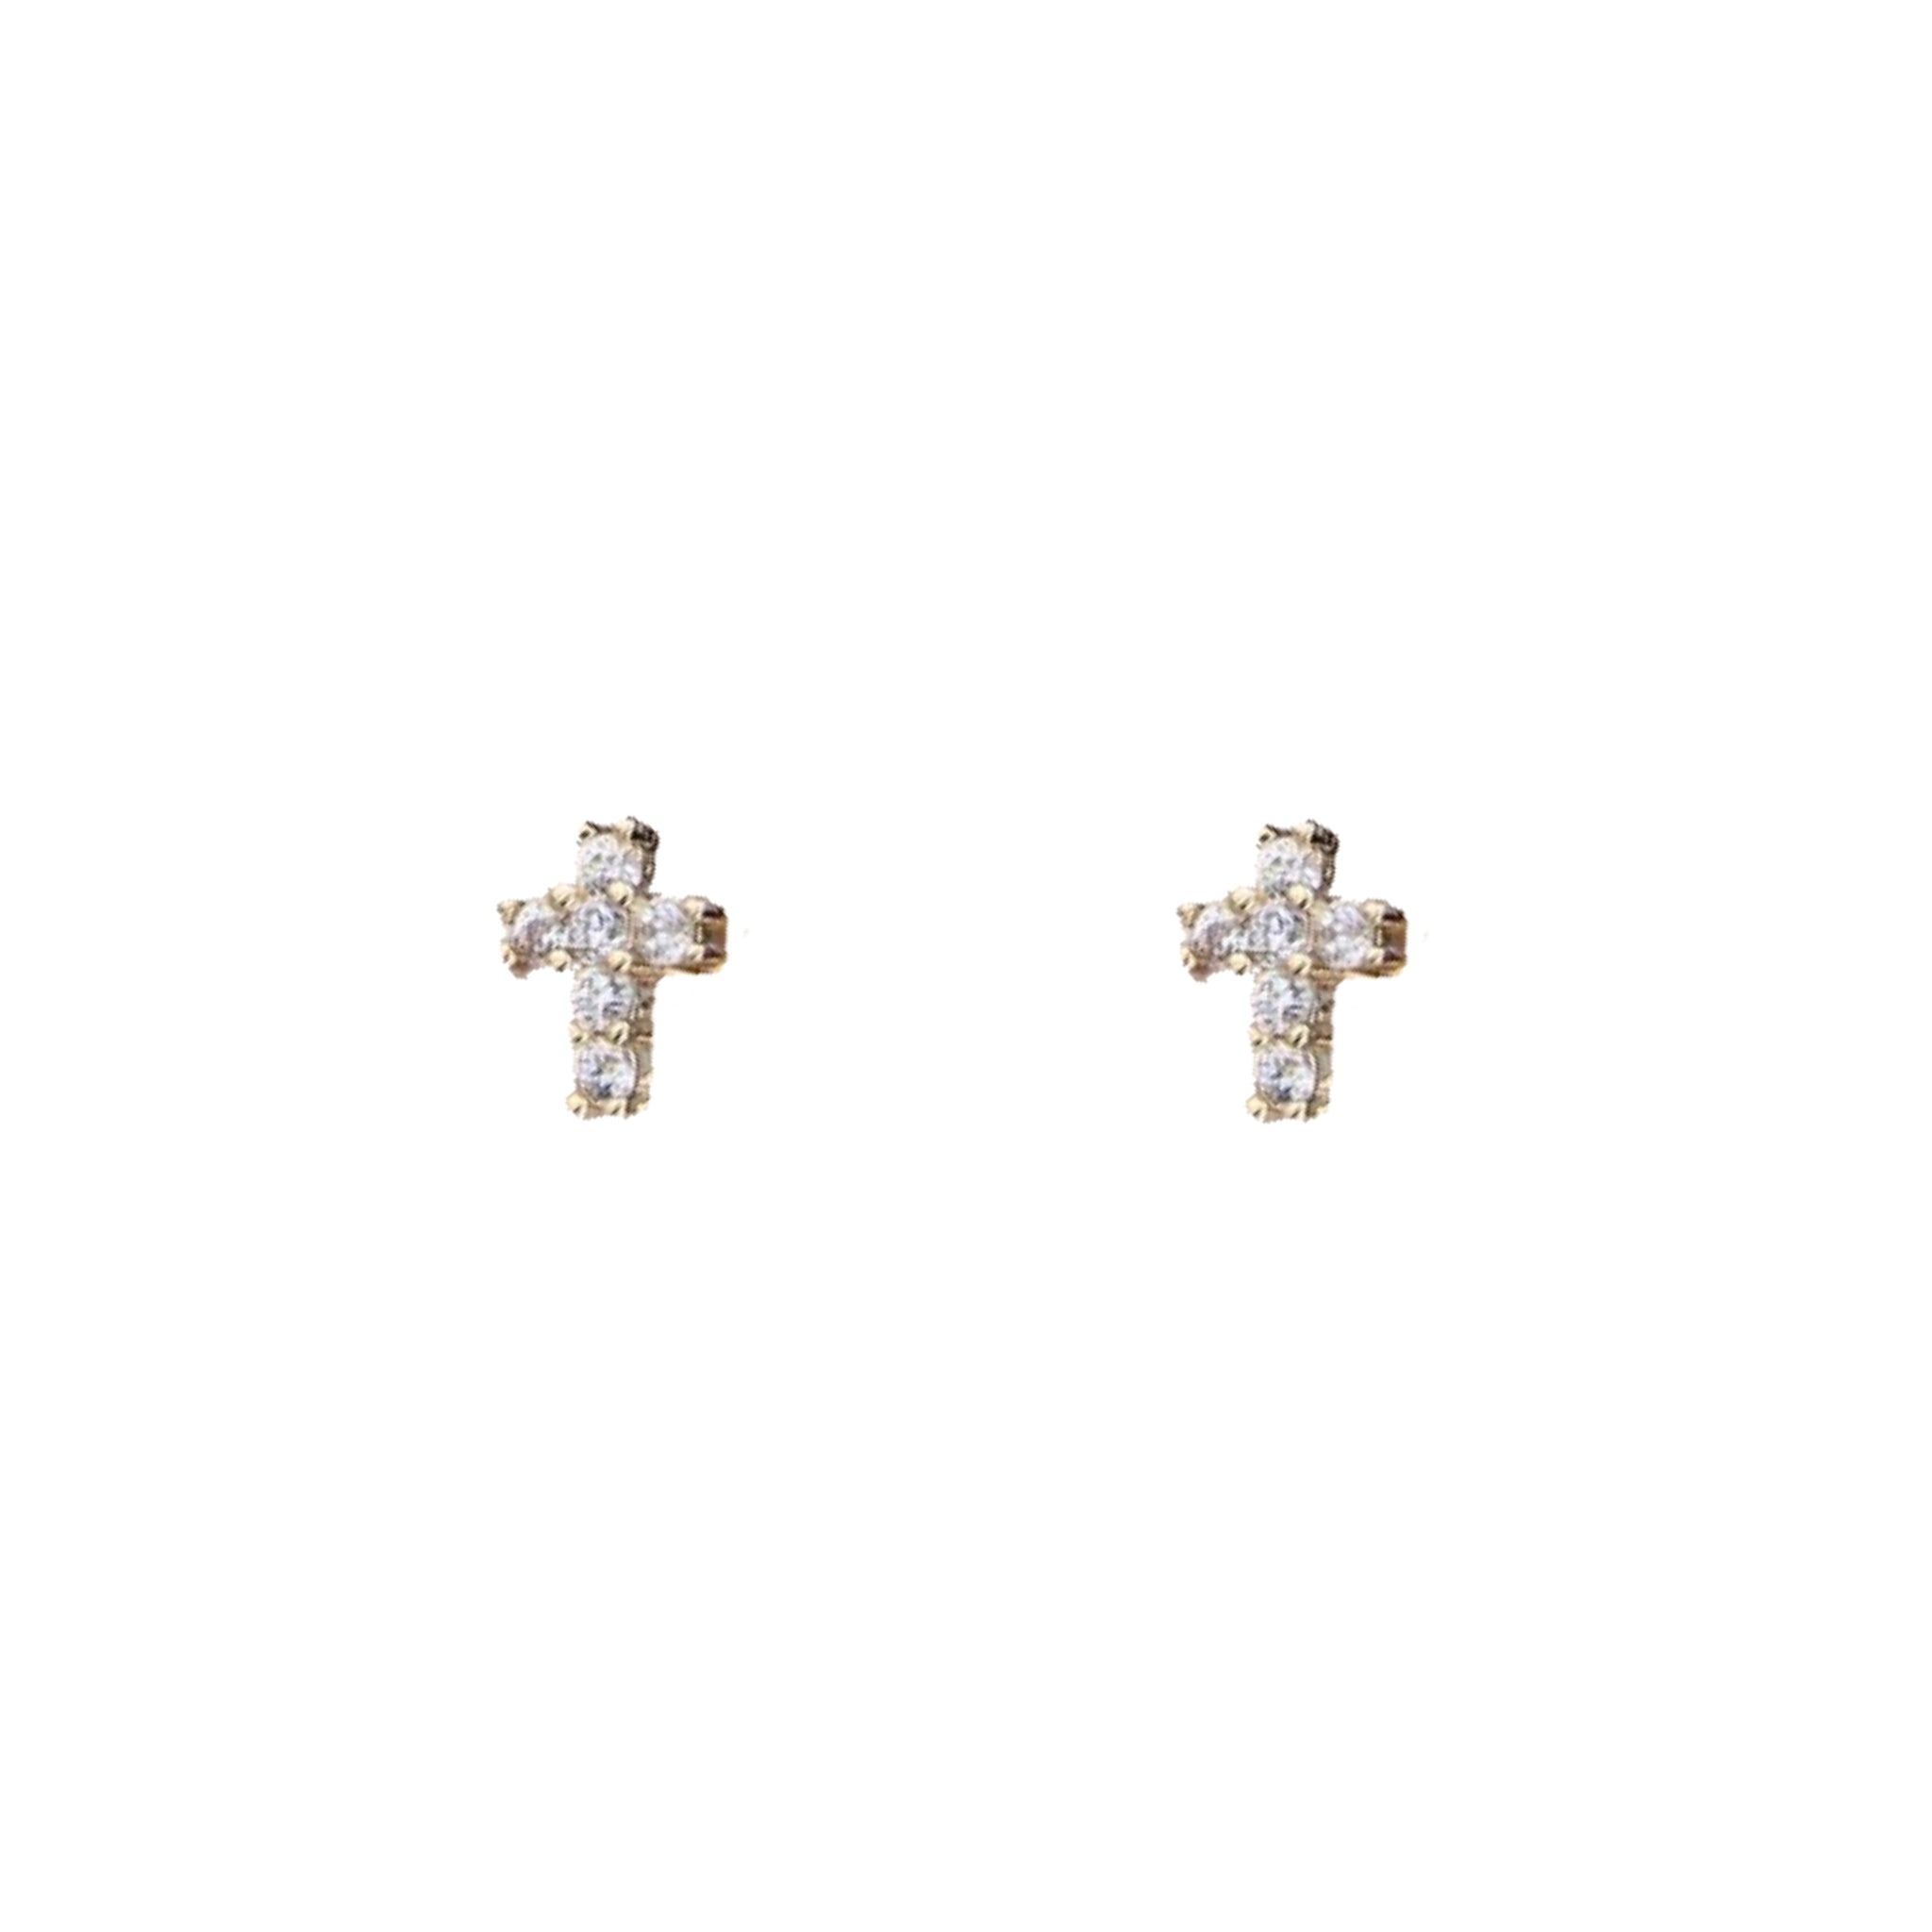 Croix Earrings